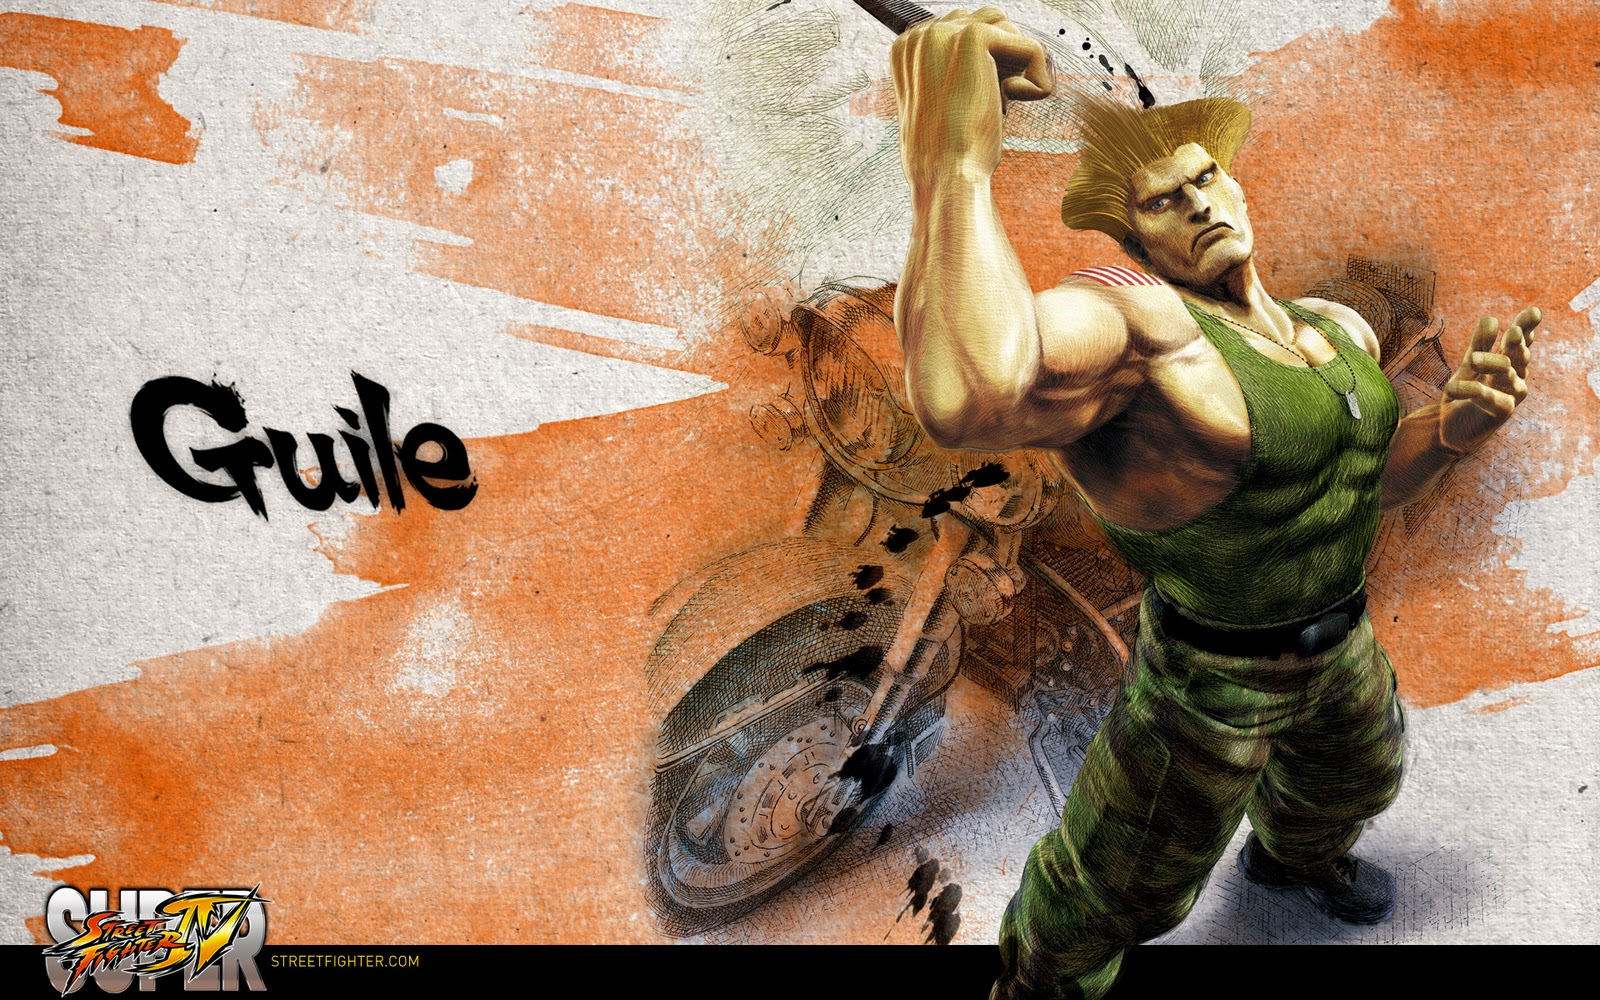 Street Fighter V 2016 WallpapersWide  - street fighter iv game wallpapers